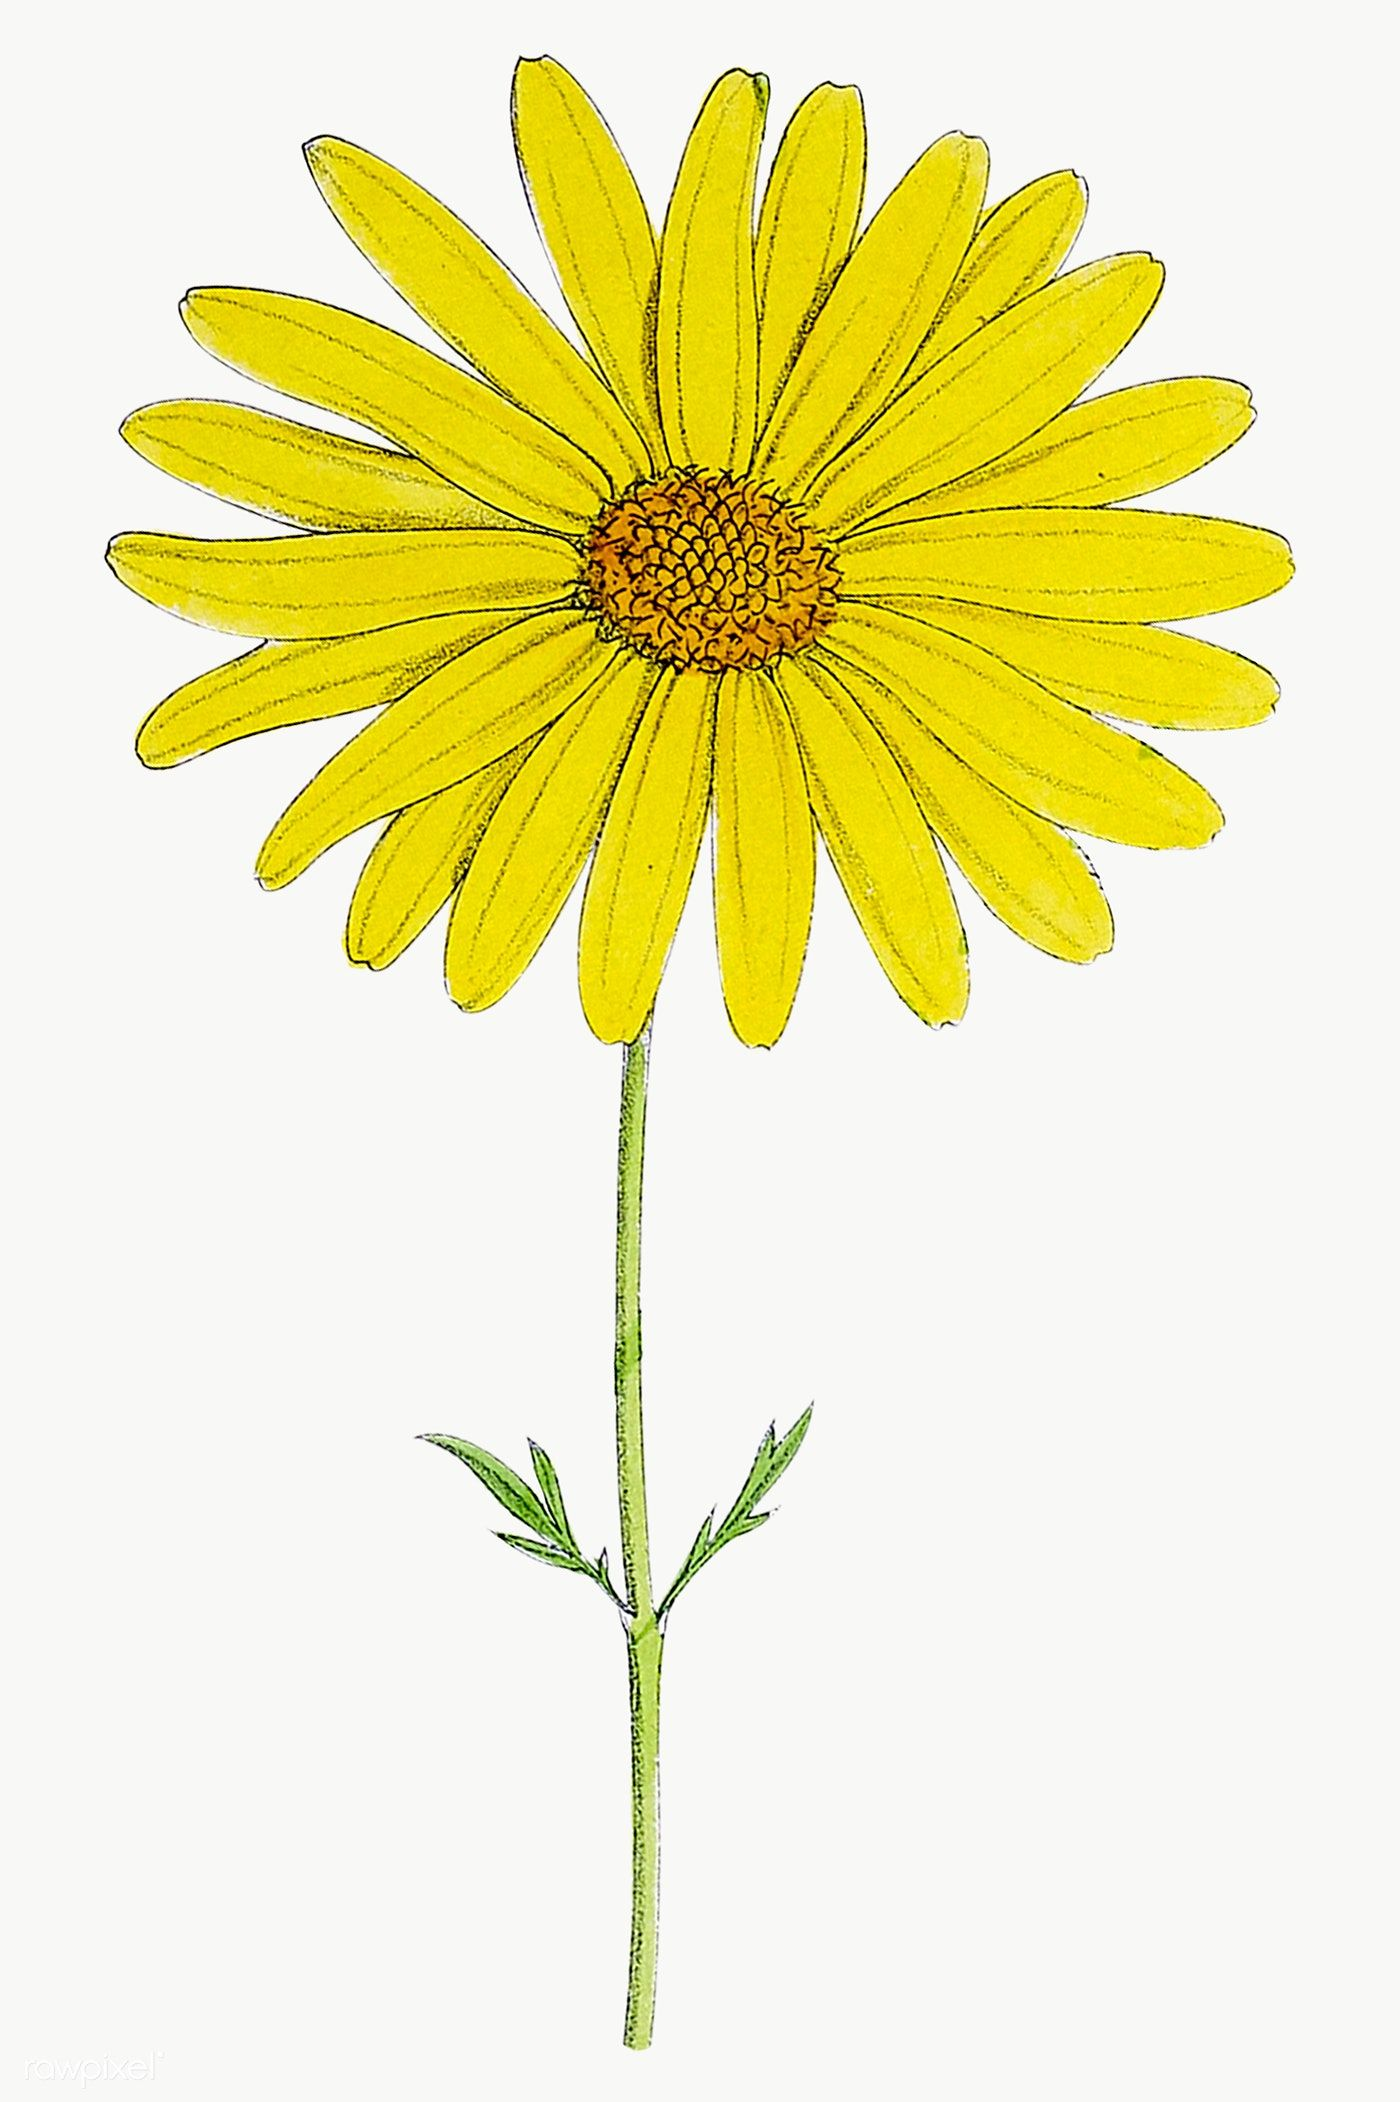 Download Premium Png Of Hand Drawn Yellow Flower Transparent Png 2094599 In 2020 Yellow Flowers Flower Illustration Yellow Daisy Flower